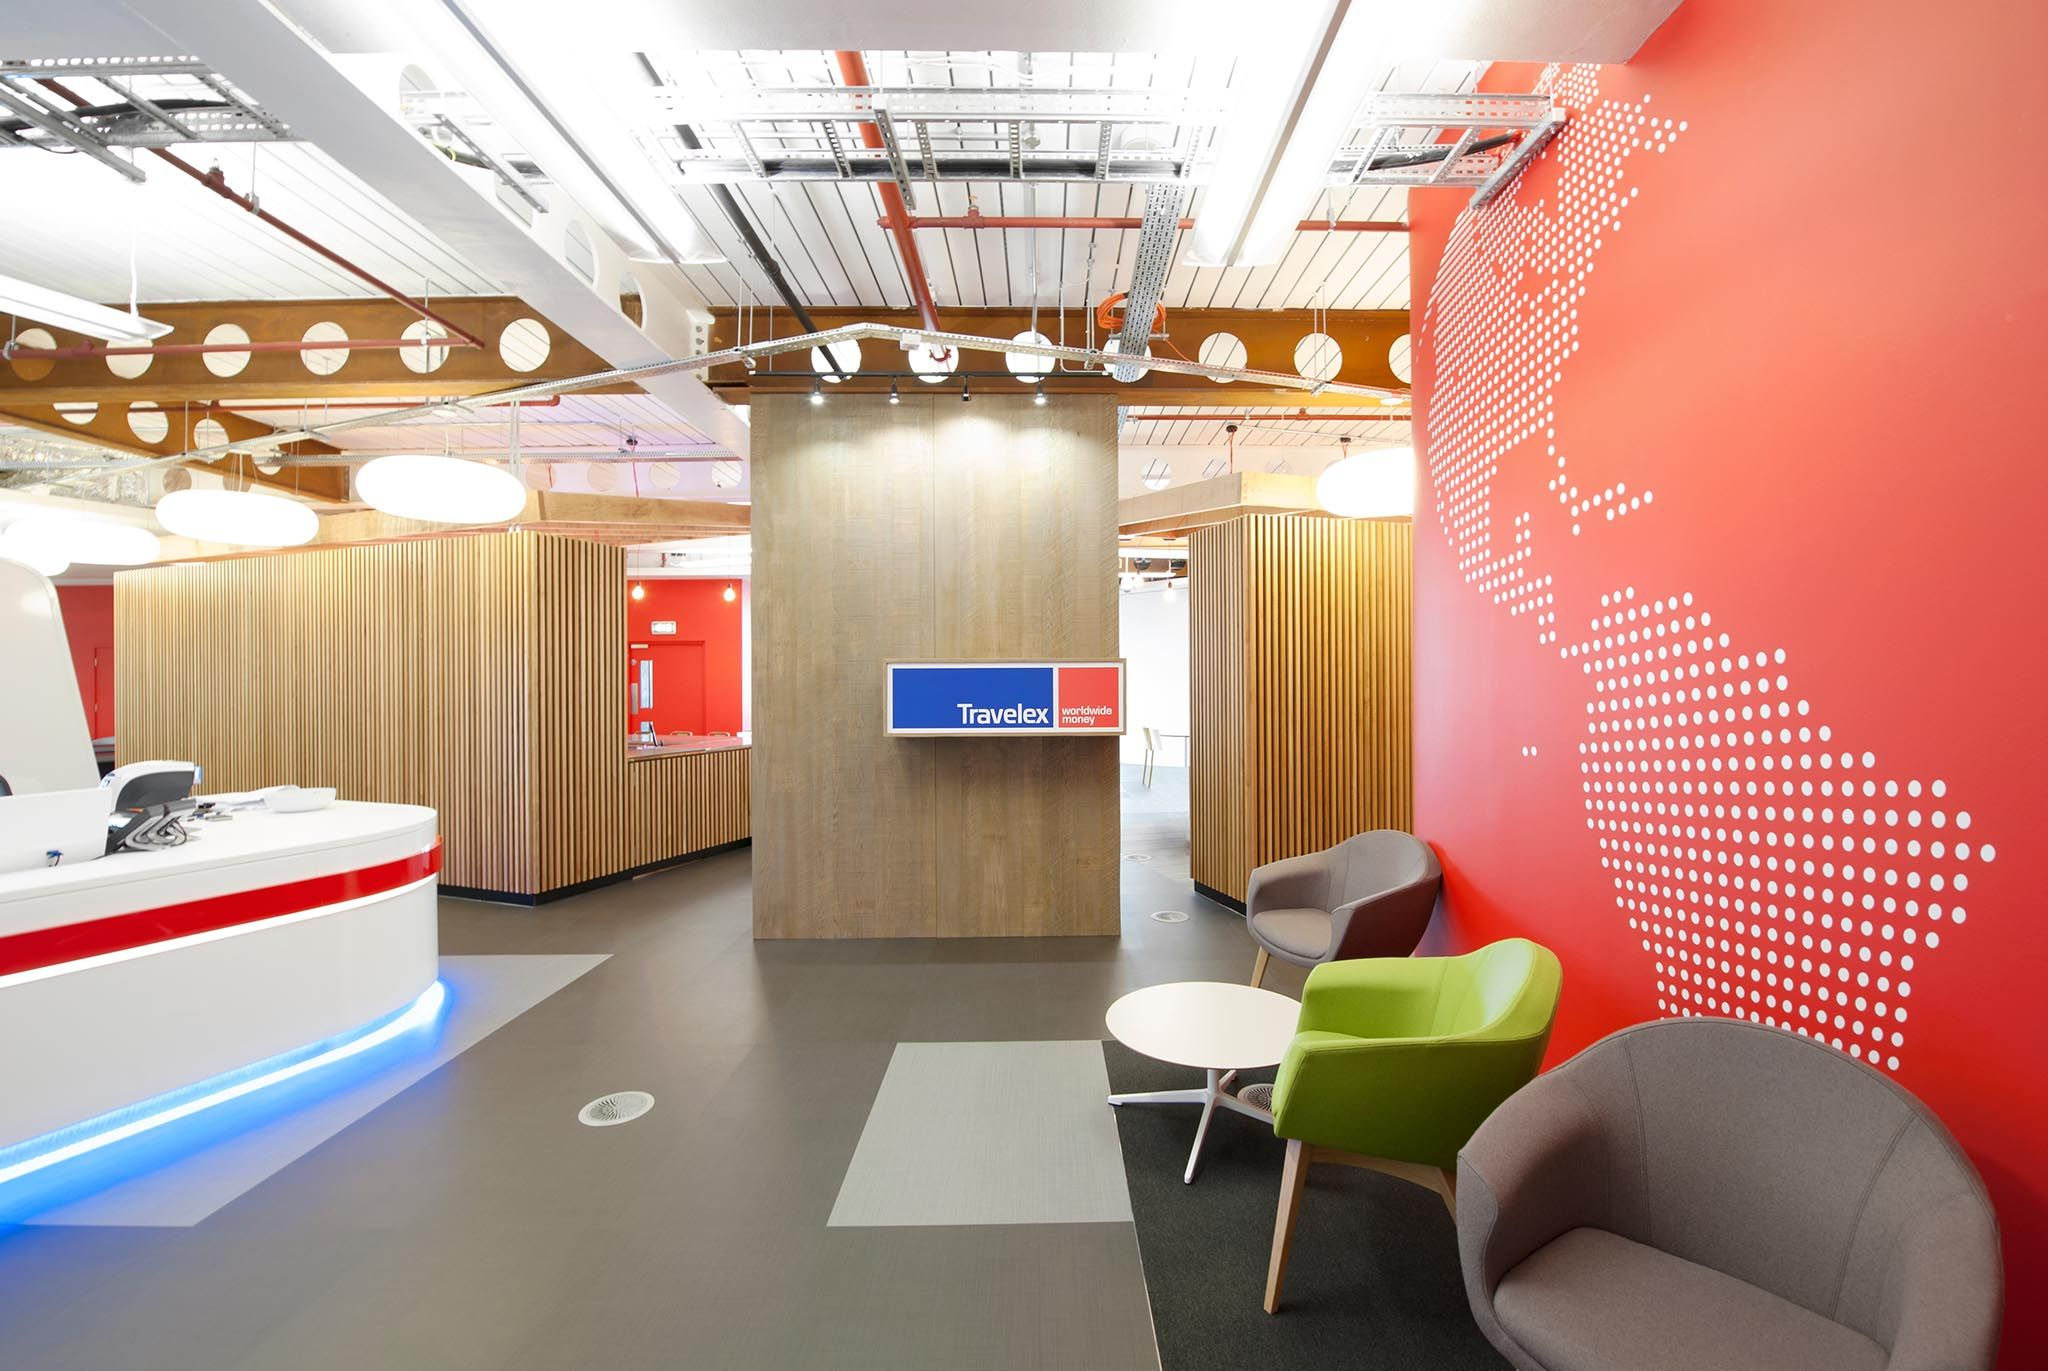 babson capital europe offices. Travelex Office Design \u0026 Fit-Out Project - Kings Cross Interiors Relocation Babson Capital Europe Offices I